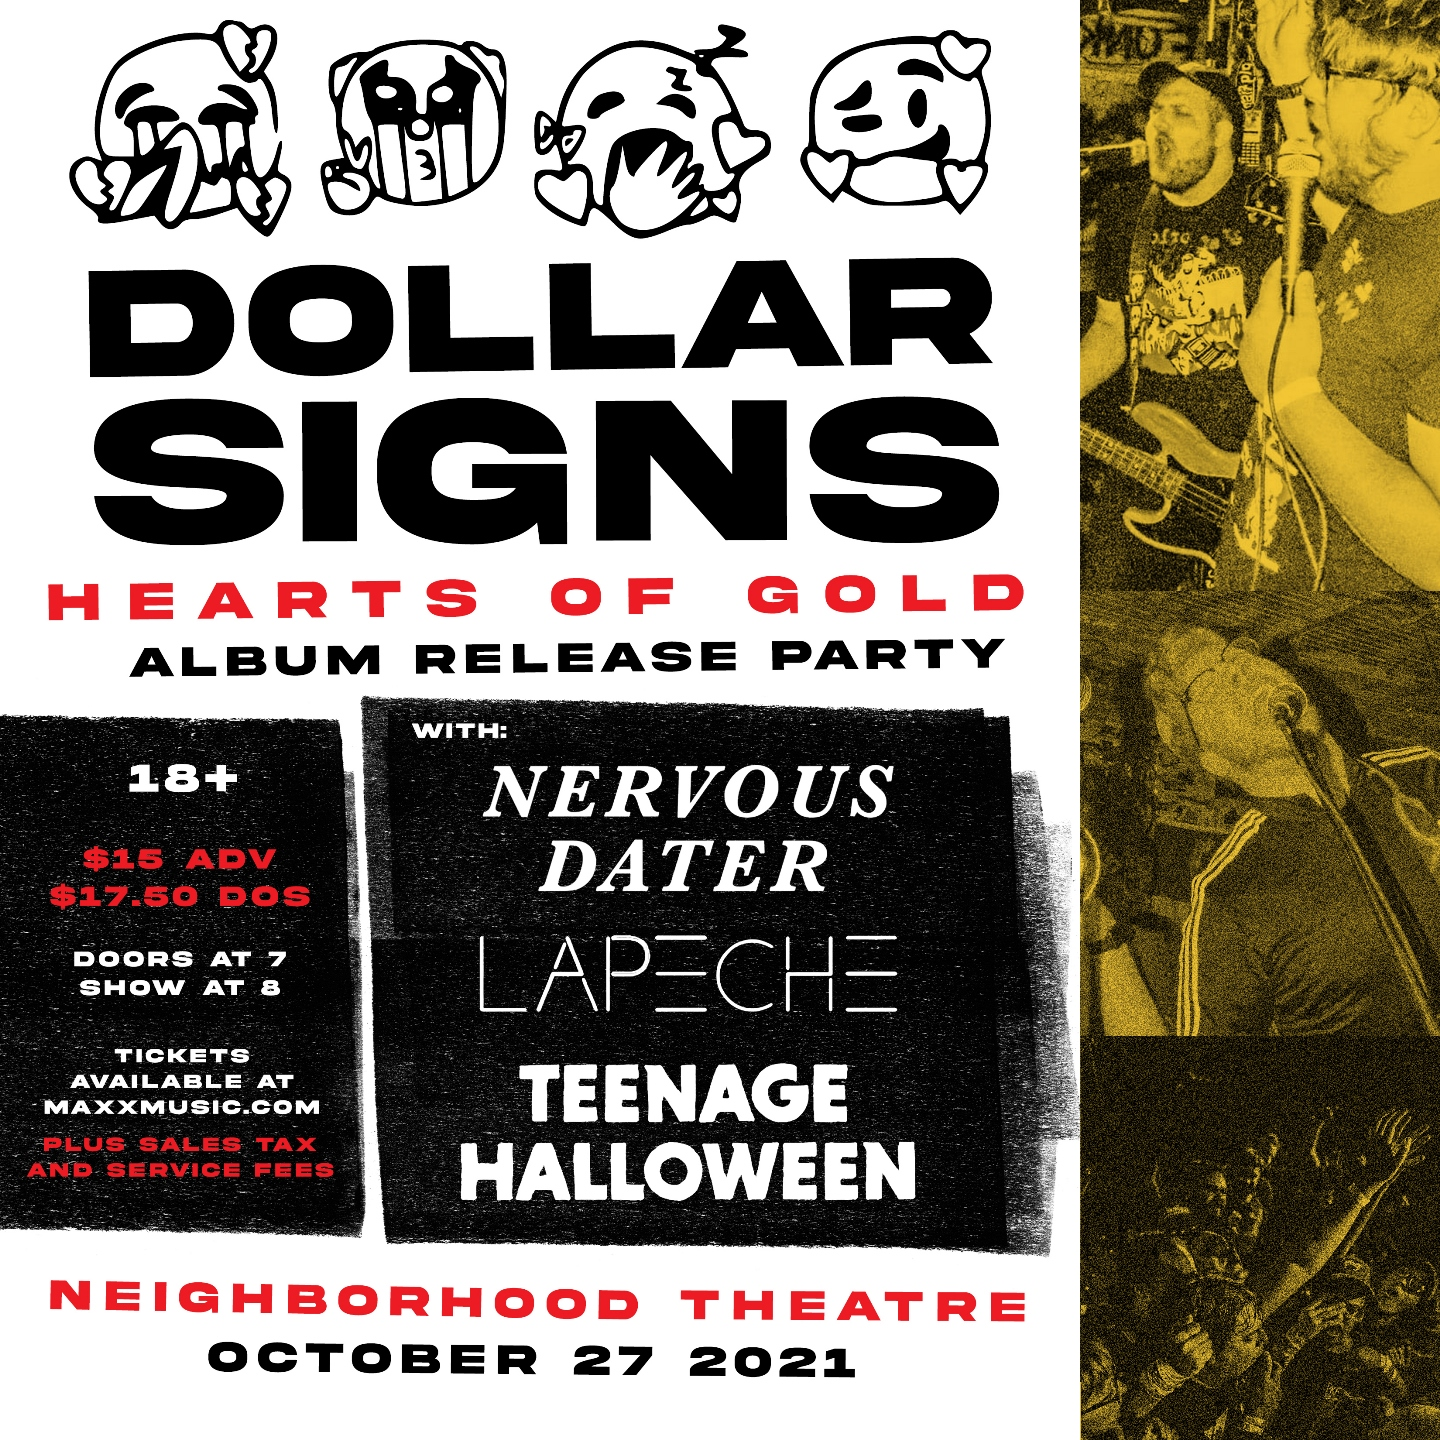 DOLLAR SIGNS – Album Release Party